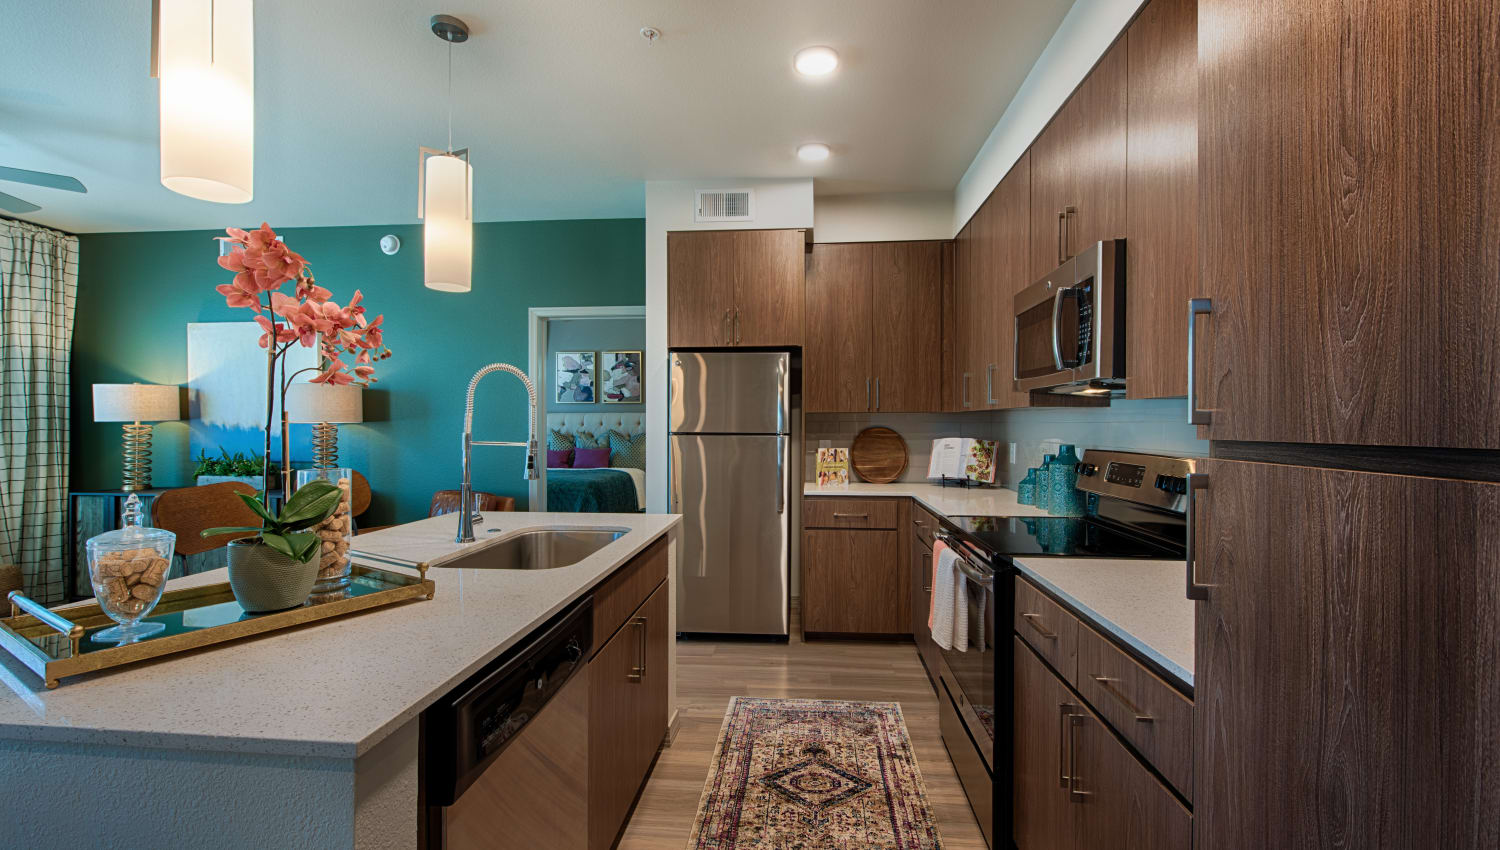 Modern, sleek kitchen at Ocio Plaza Del Rio in Peoria, Arizona